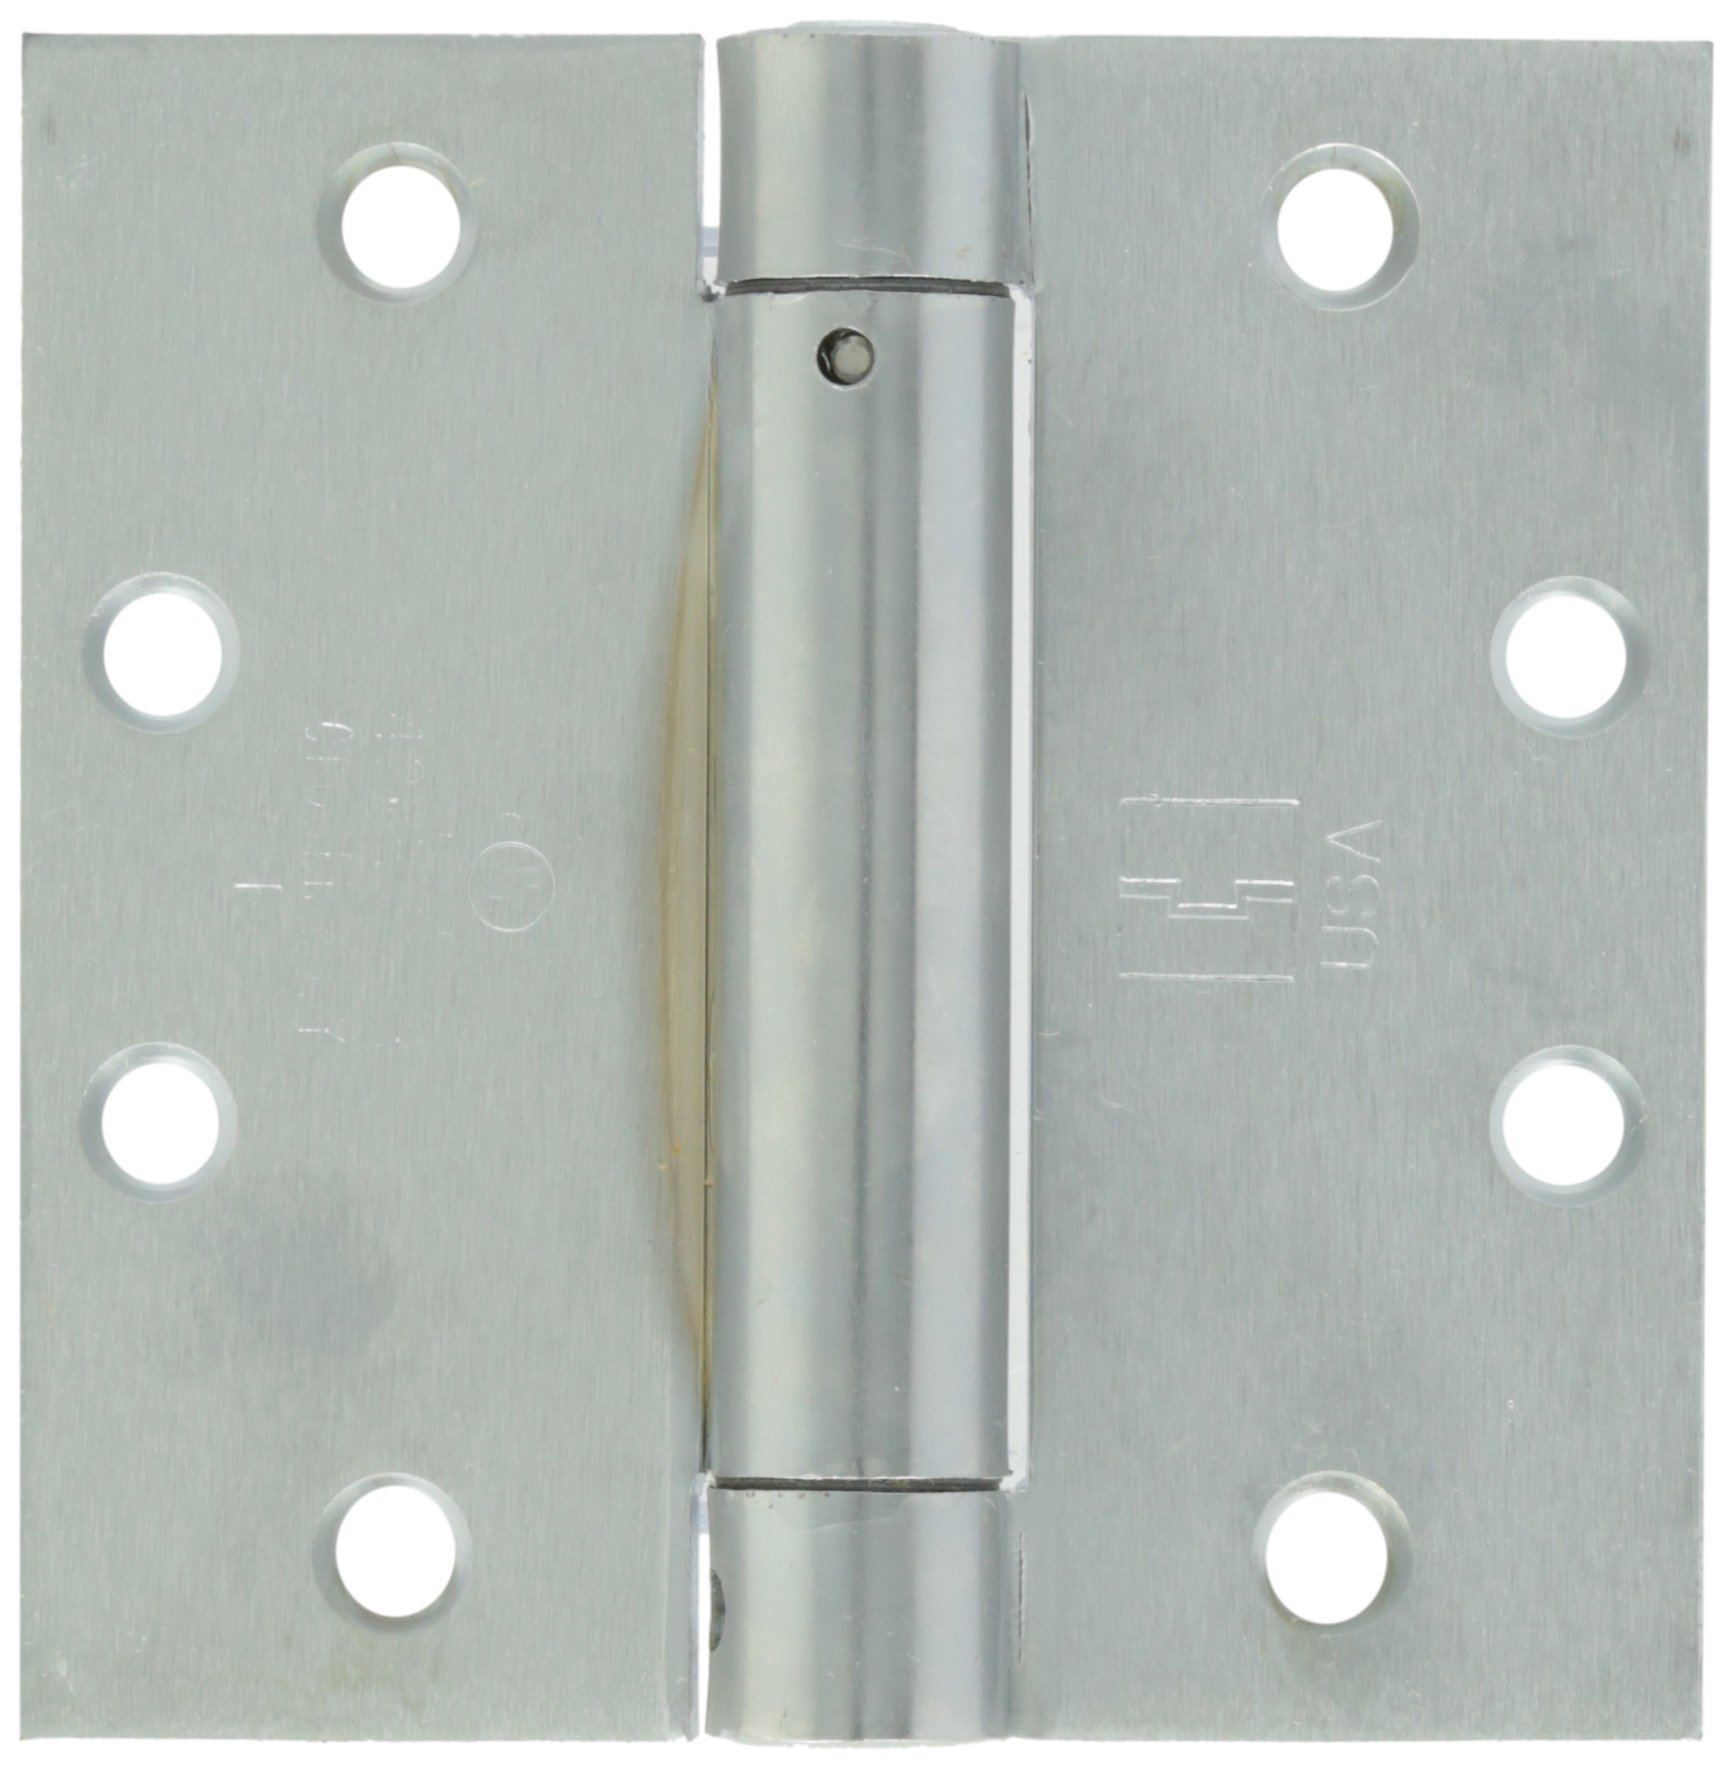 Hager 125000045004526D Architectural Hinge, 4.5''x4.5'', US26D Finish (Pack of 3)